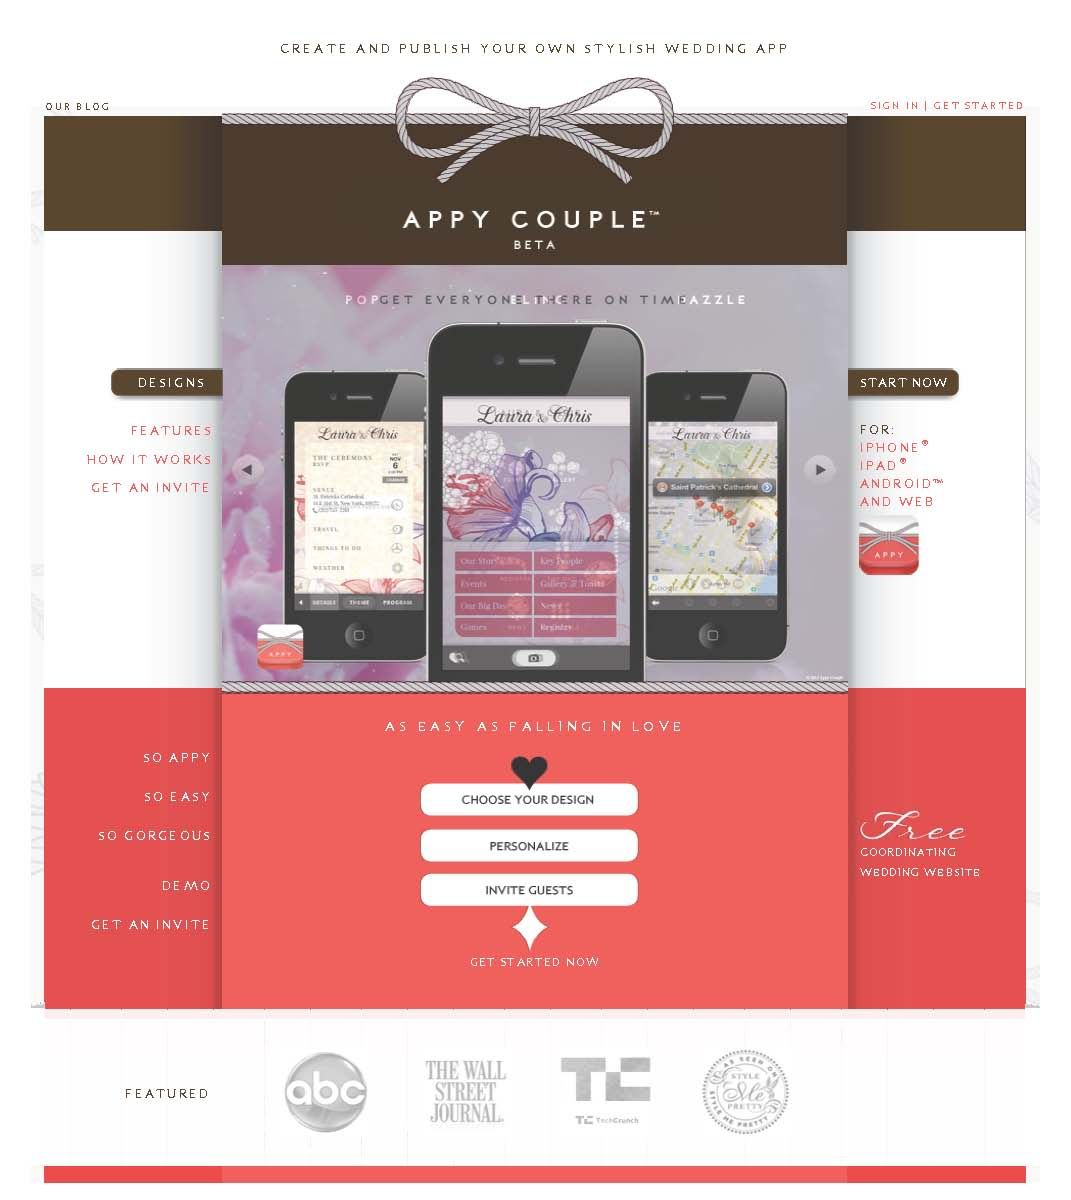 Appy Couples Create Your Own Custom Wedding App To Share With Guests Wedding Apps Diy Wedding Planning Wedding Invitations Diy